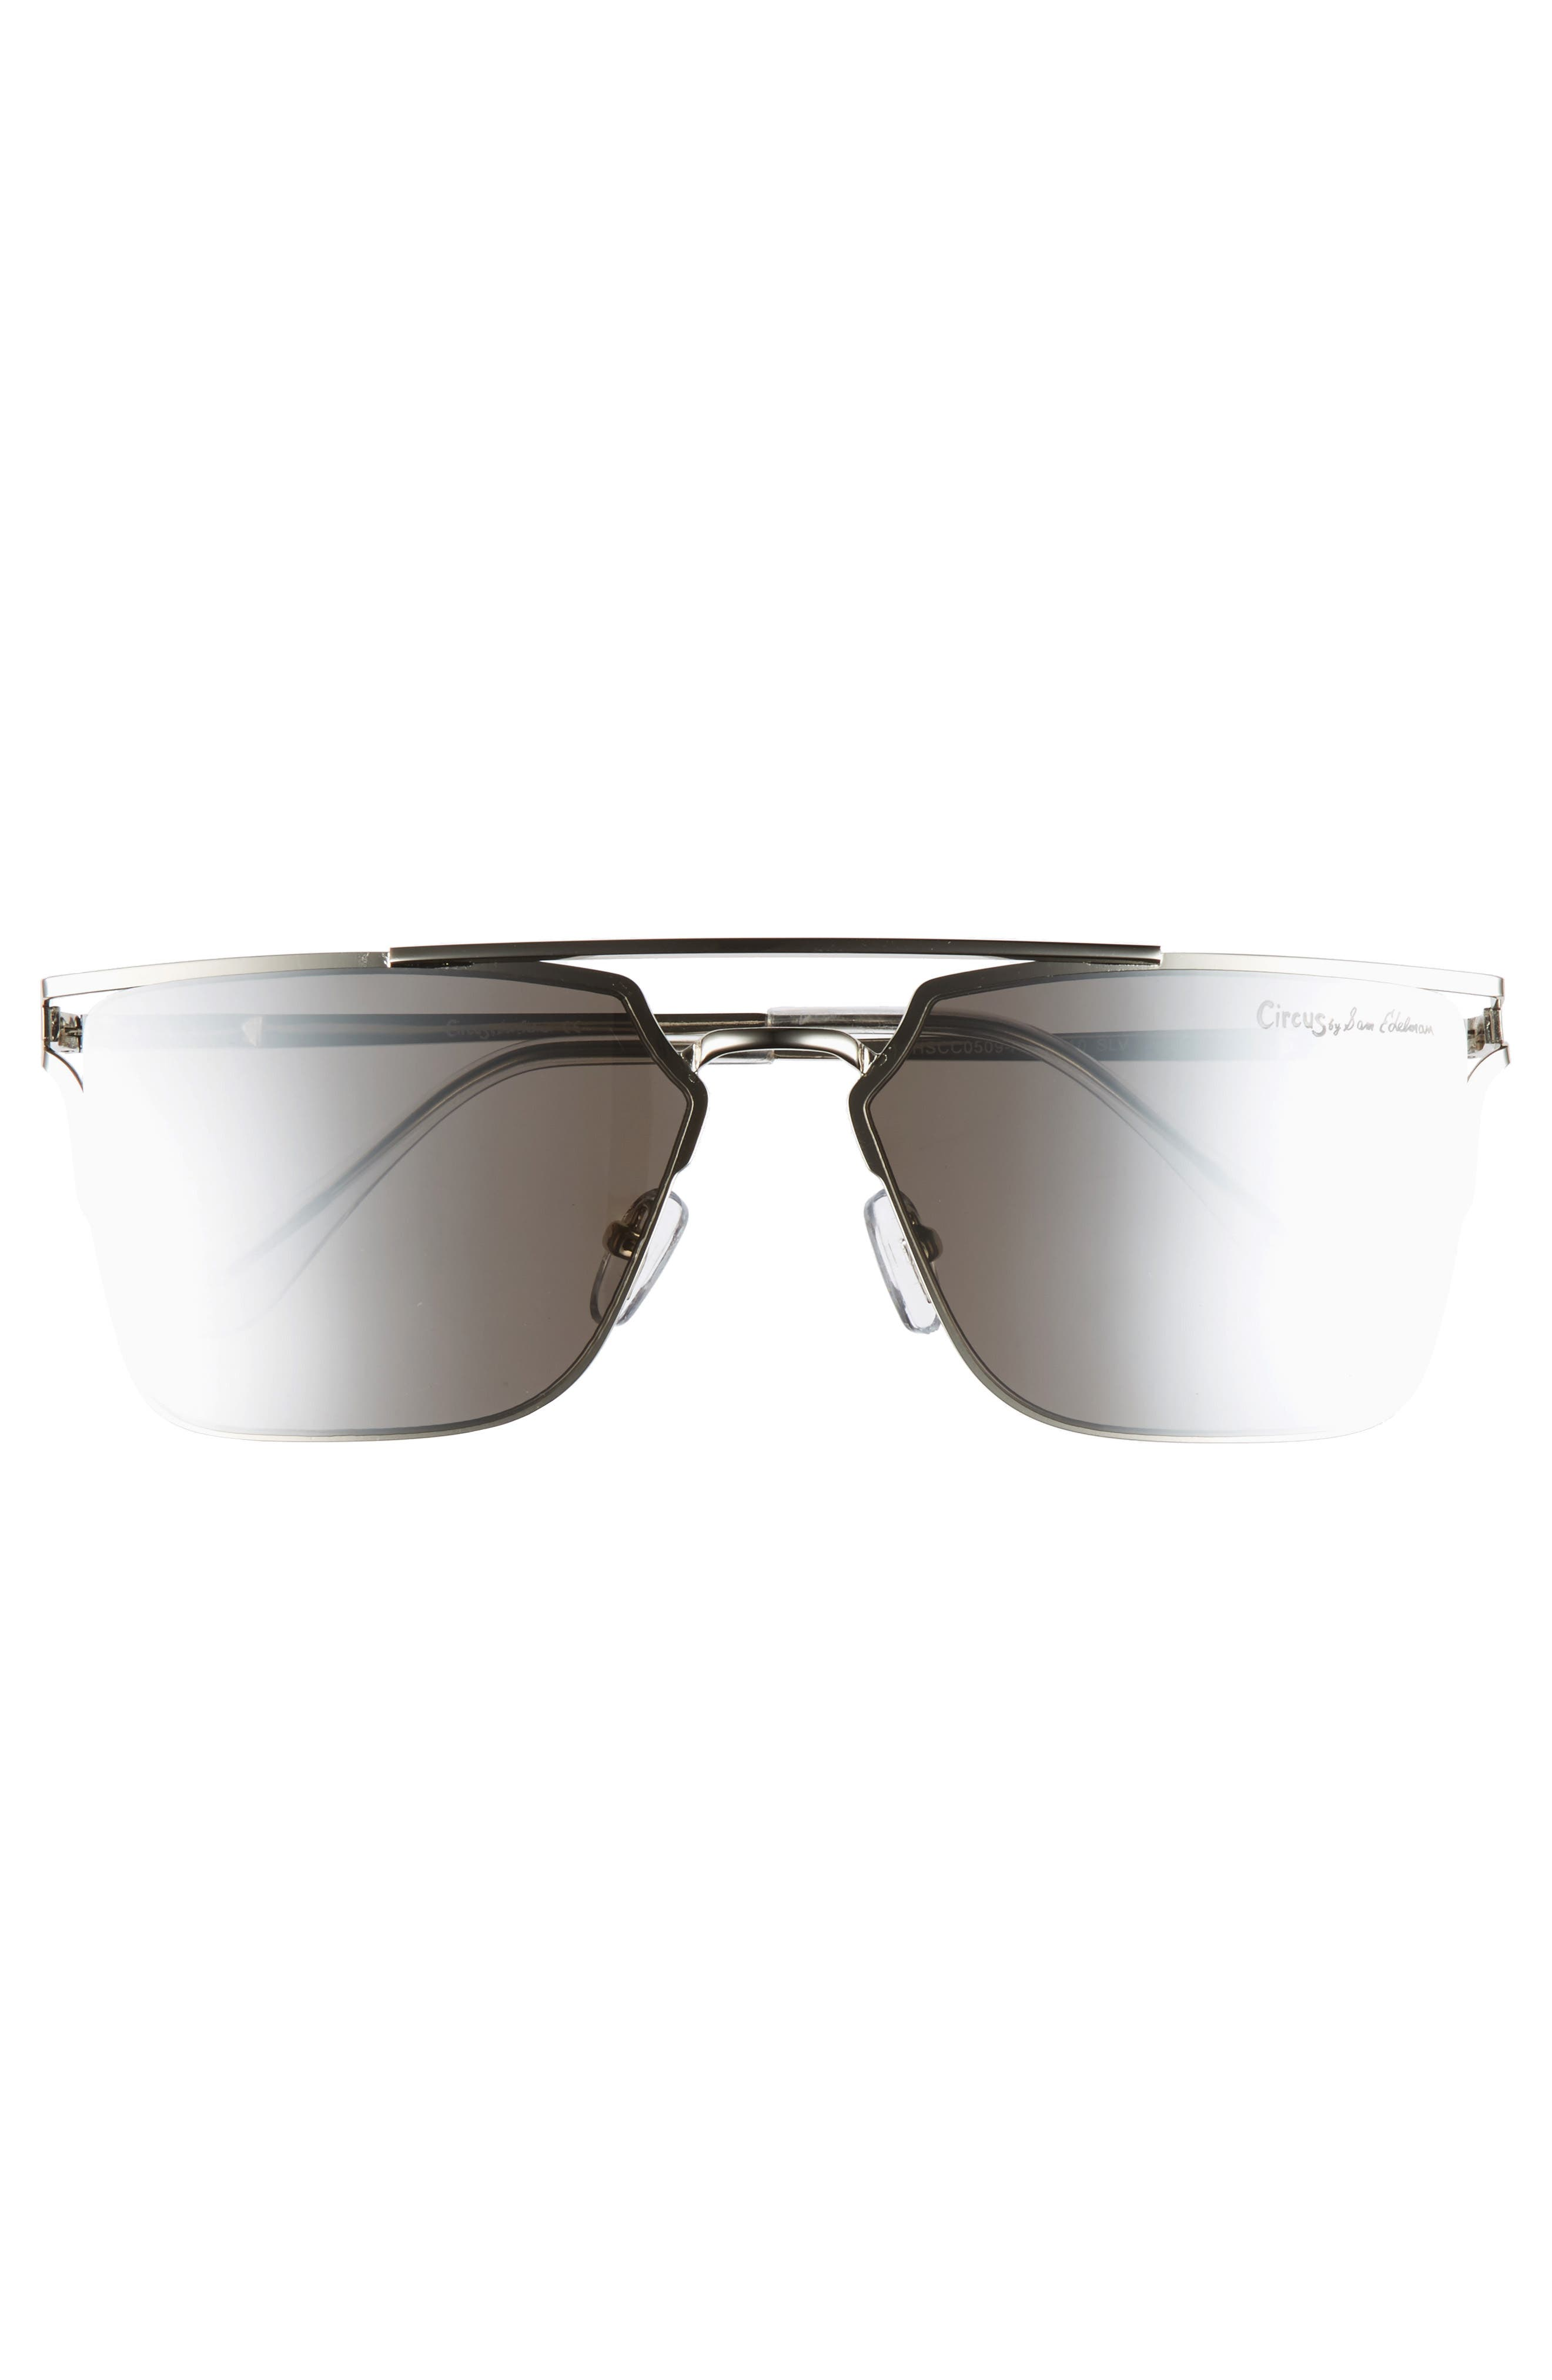 56mm Flat Top Sunglasses,                             Alternate thumbnail 3, color,                             Silver